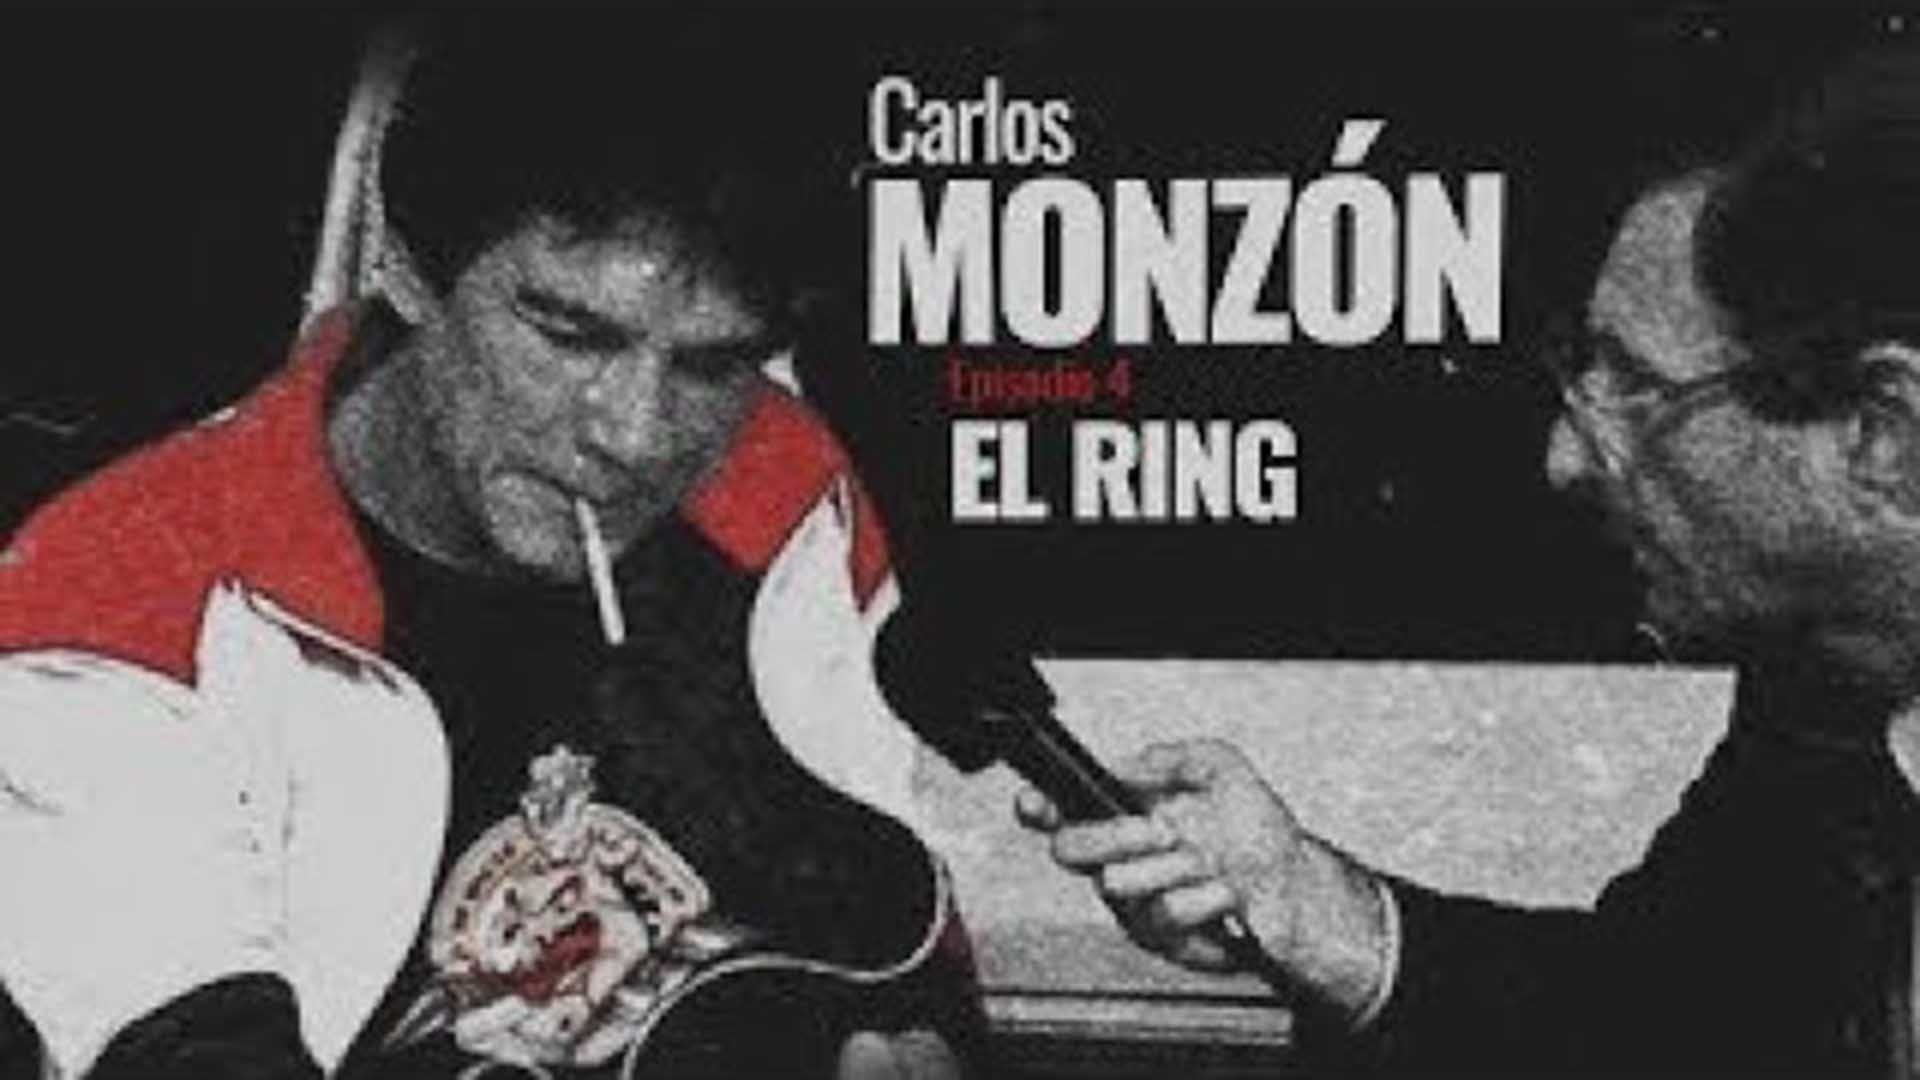 Carlos Monzón, Poverty, Glory, Excesses, Femicide and a Tragic End